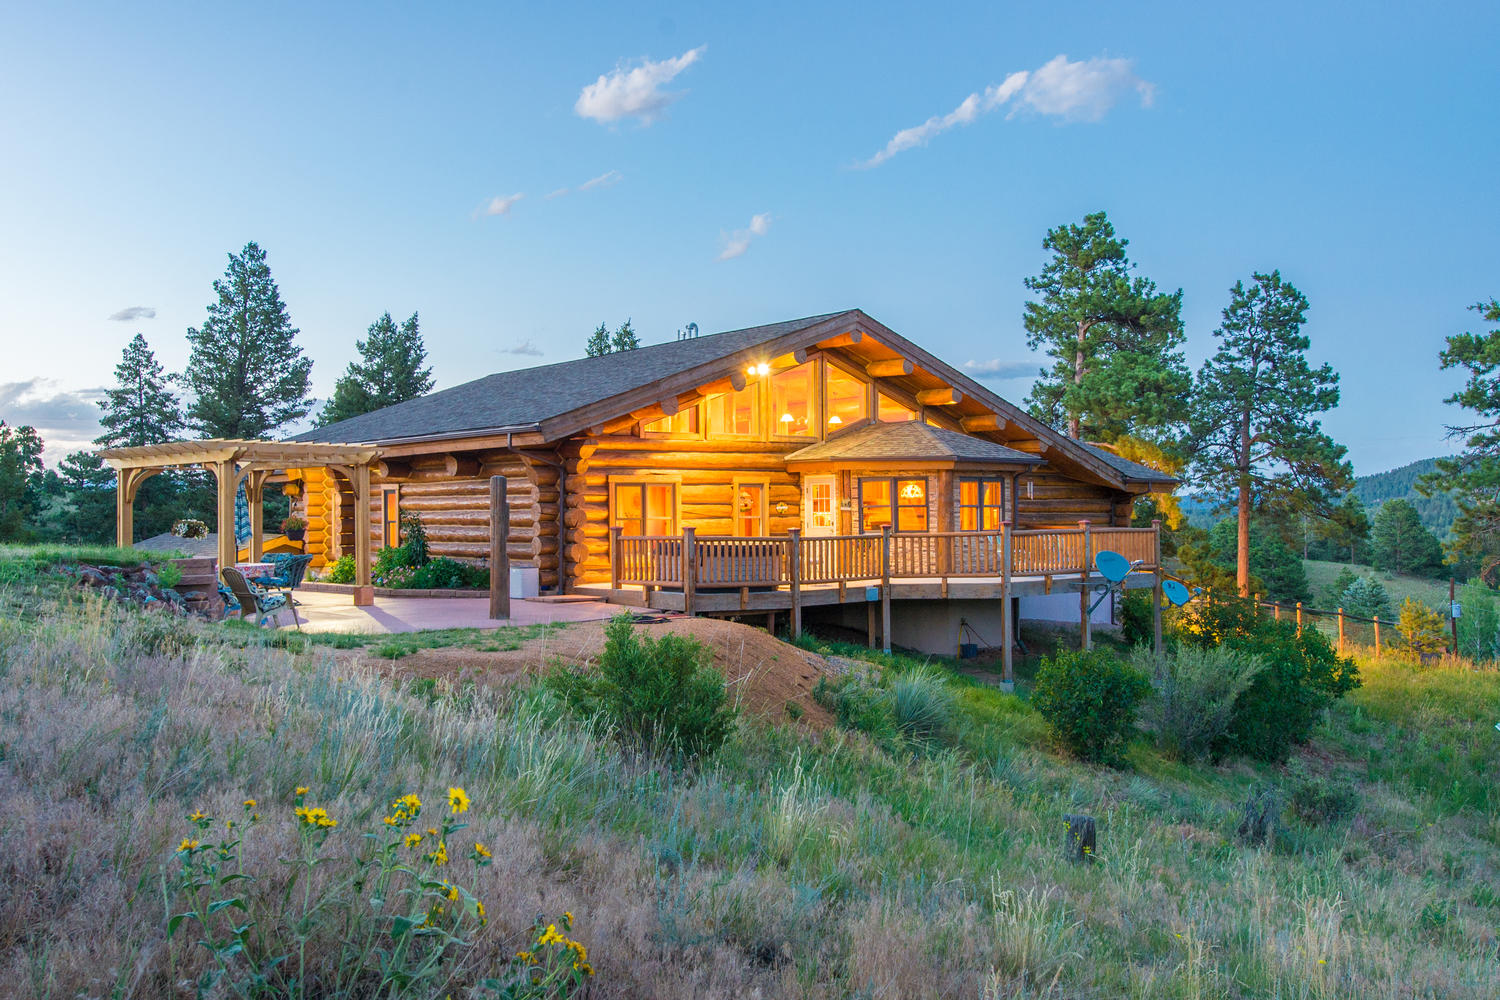 Single Family Home for Sale at Hand-Hewn Log Home 19968 Argentine Way Buffalo Creek, Colorado, 80425 United States